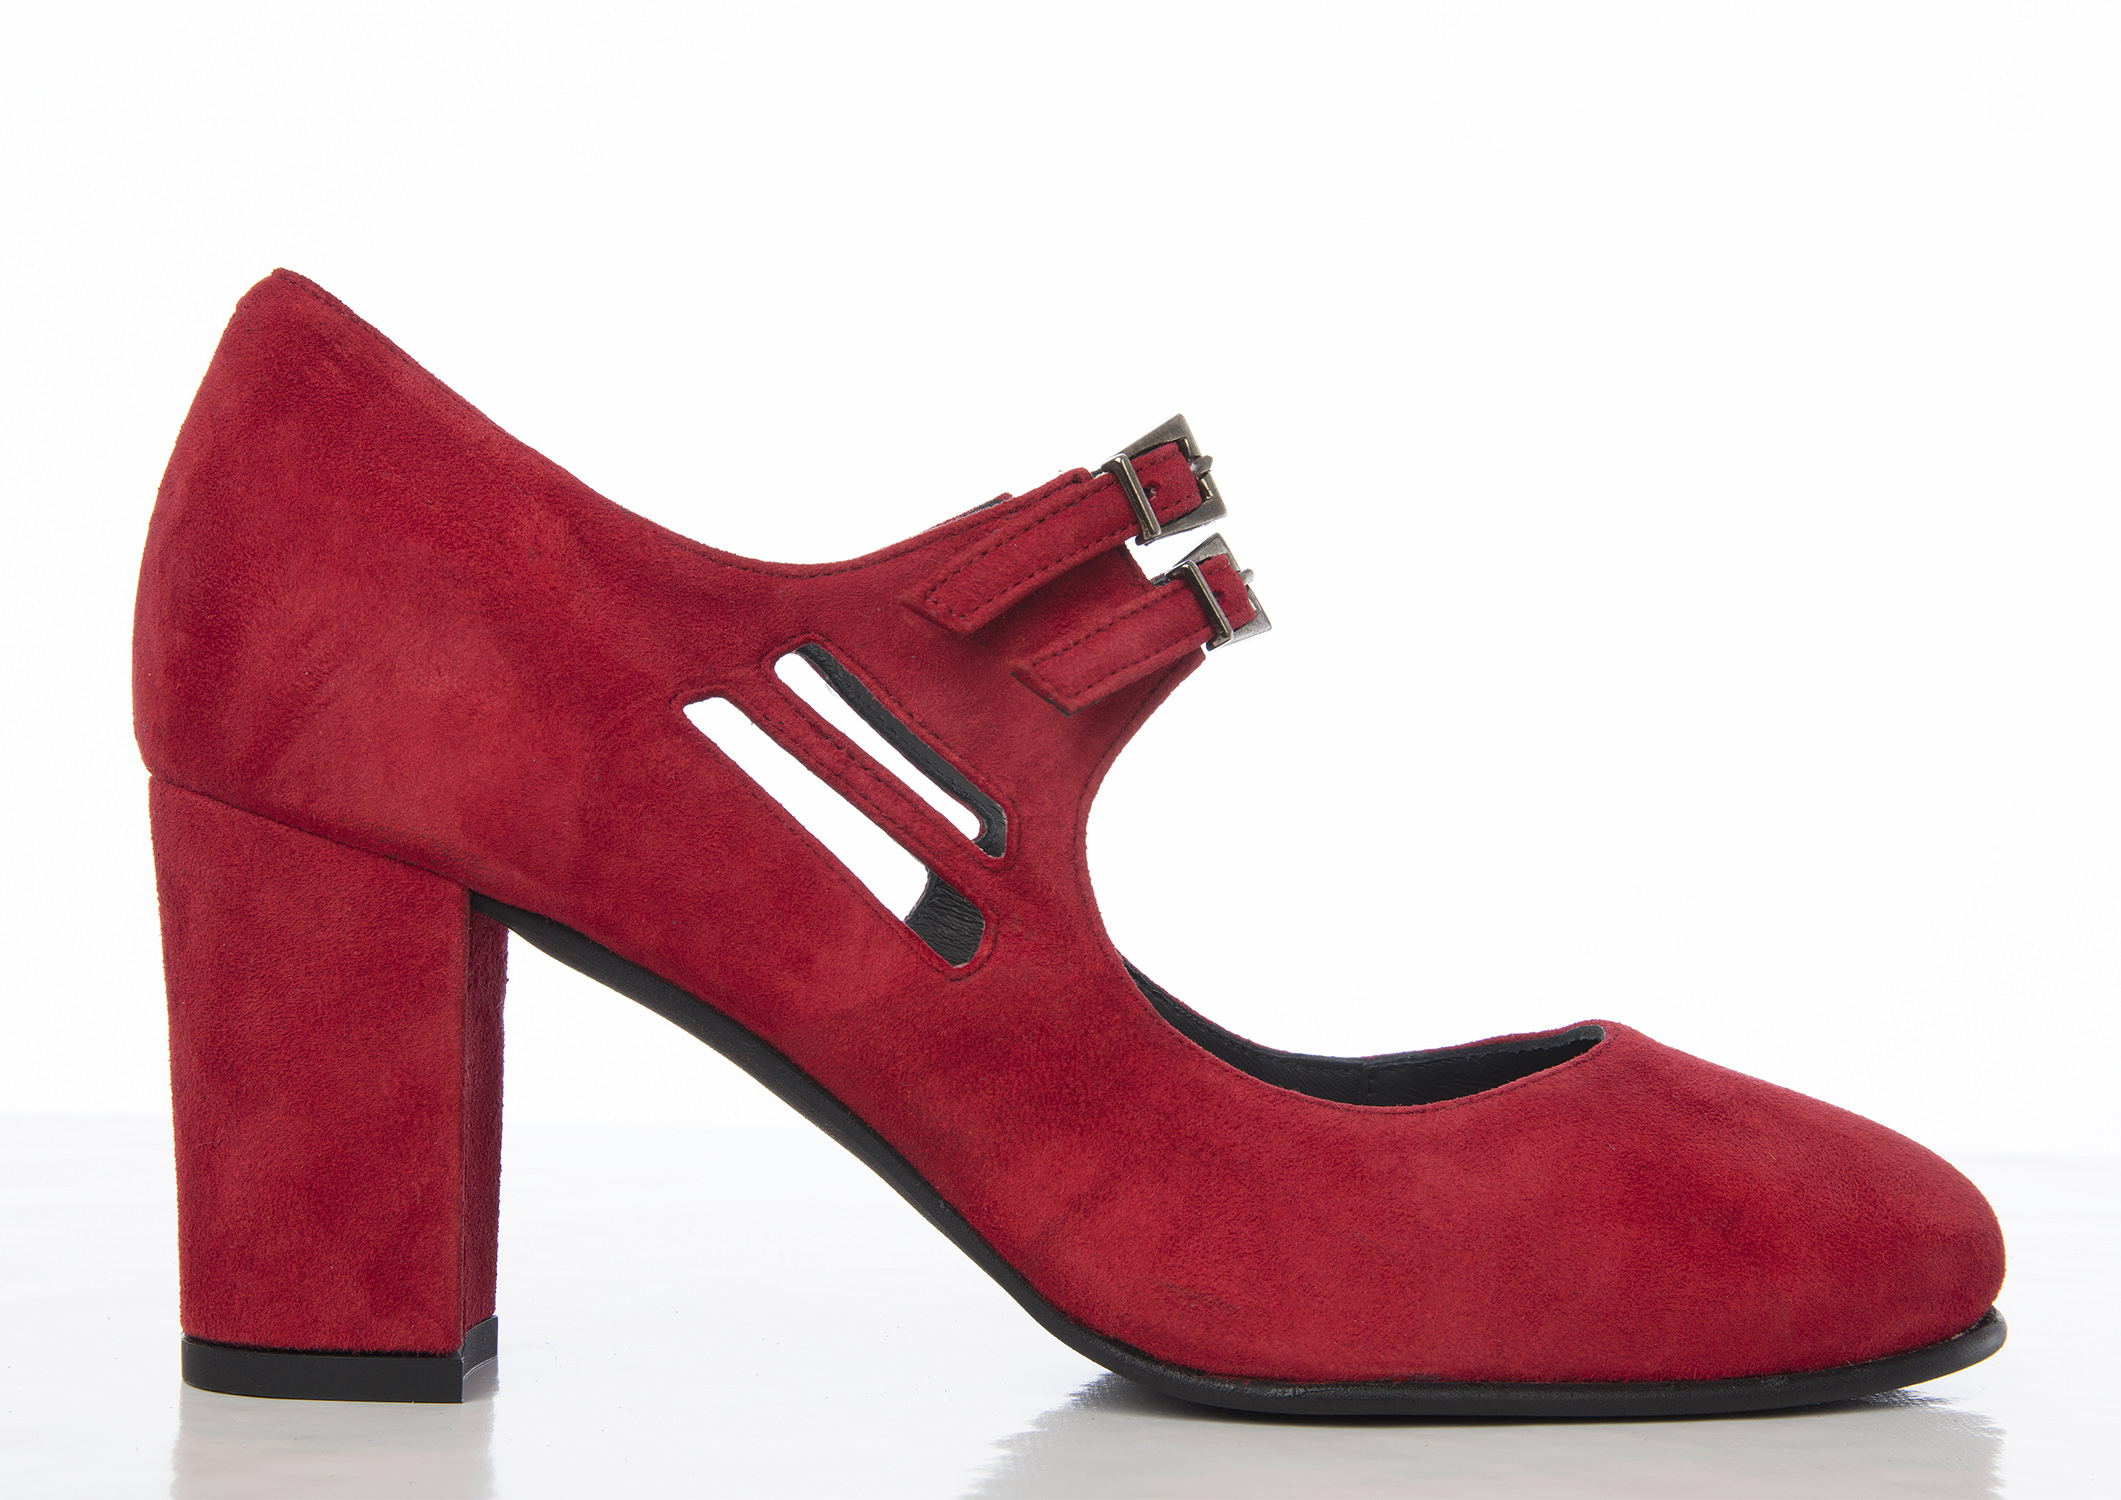 Tant Sofia-Liv Red suede - Nordic Shoepeople